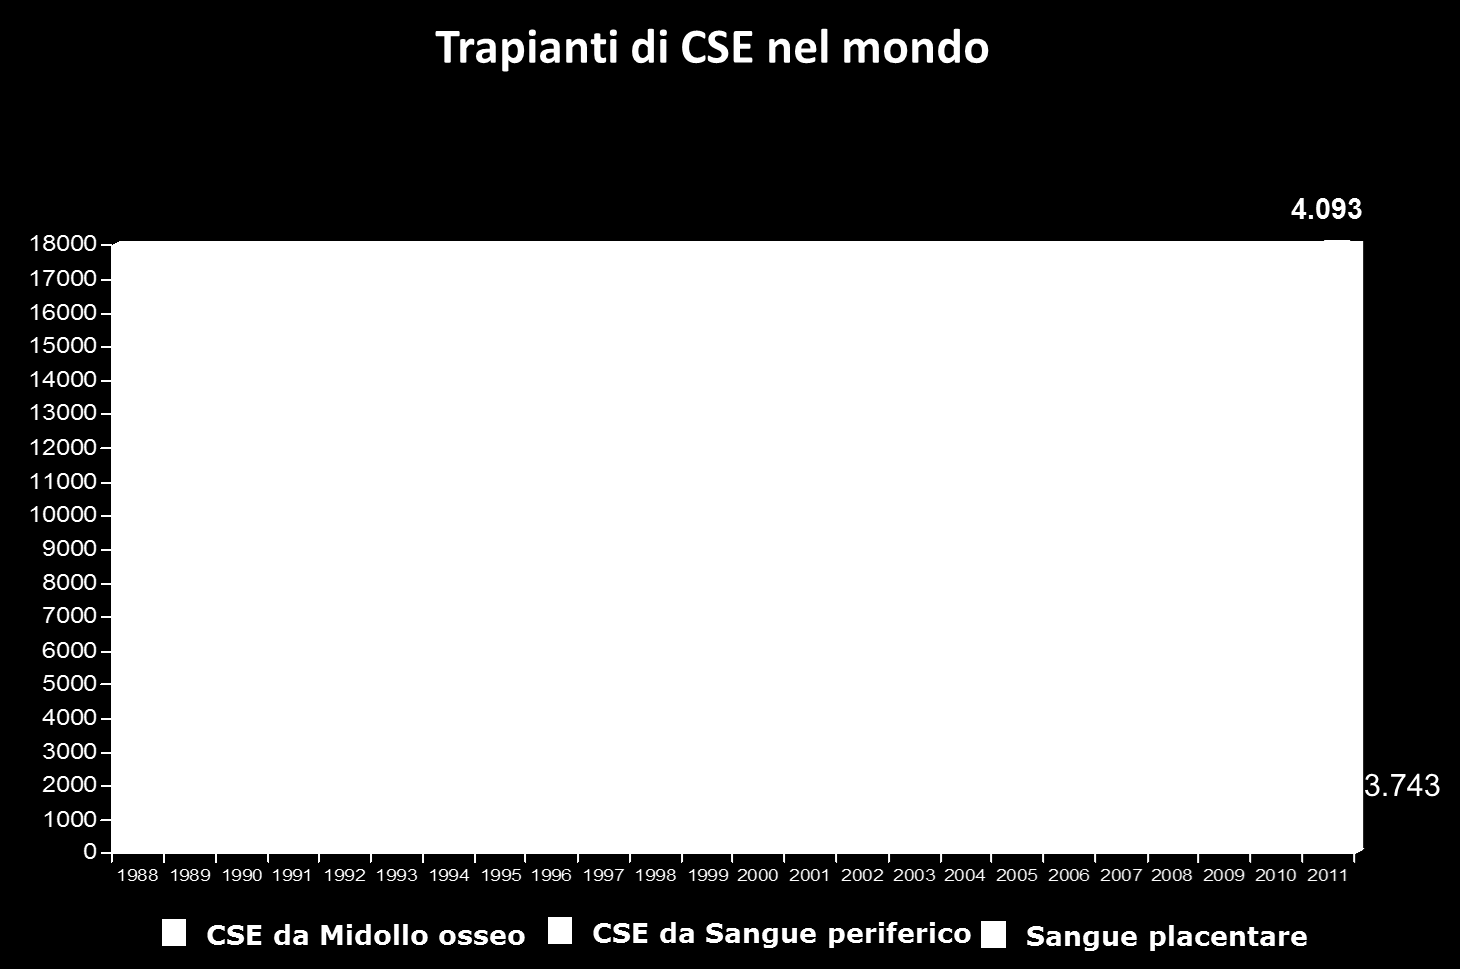 Trapianti di CSE unrelated in Italia 100% 95% 90% 85% 80% 75% 316 70% 347 414 195 210 420 459 250 225 87 92 65% 60% 55% 50% 45% 40% 35% 206